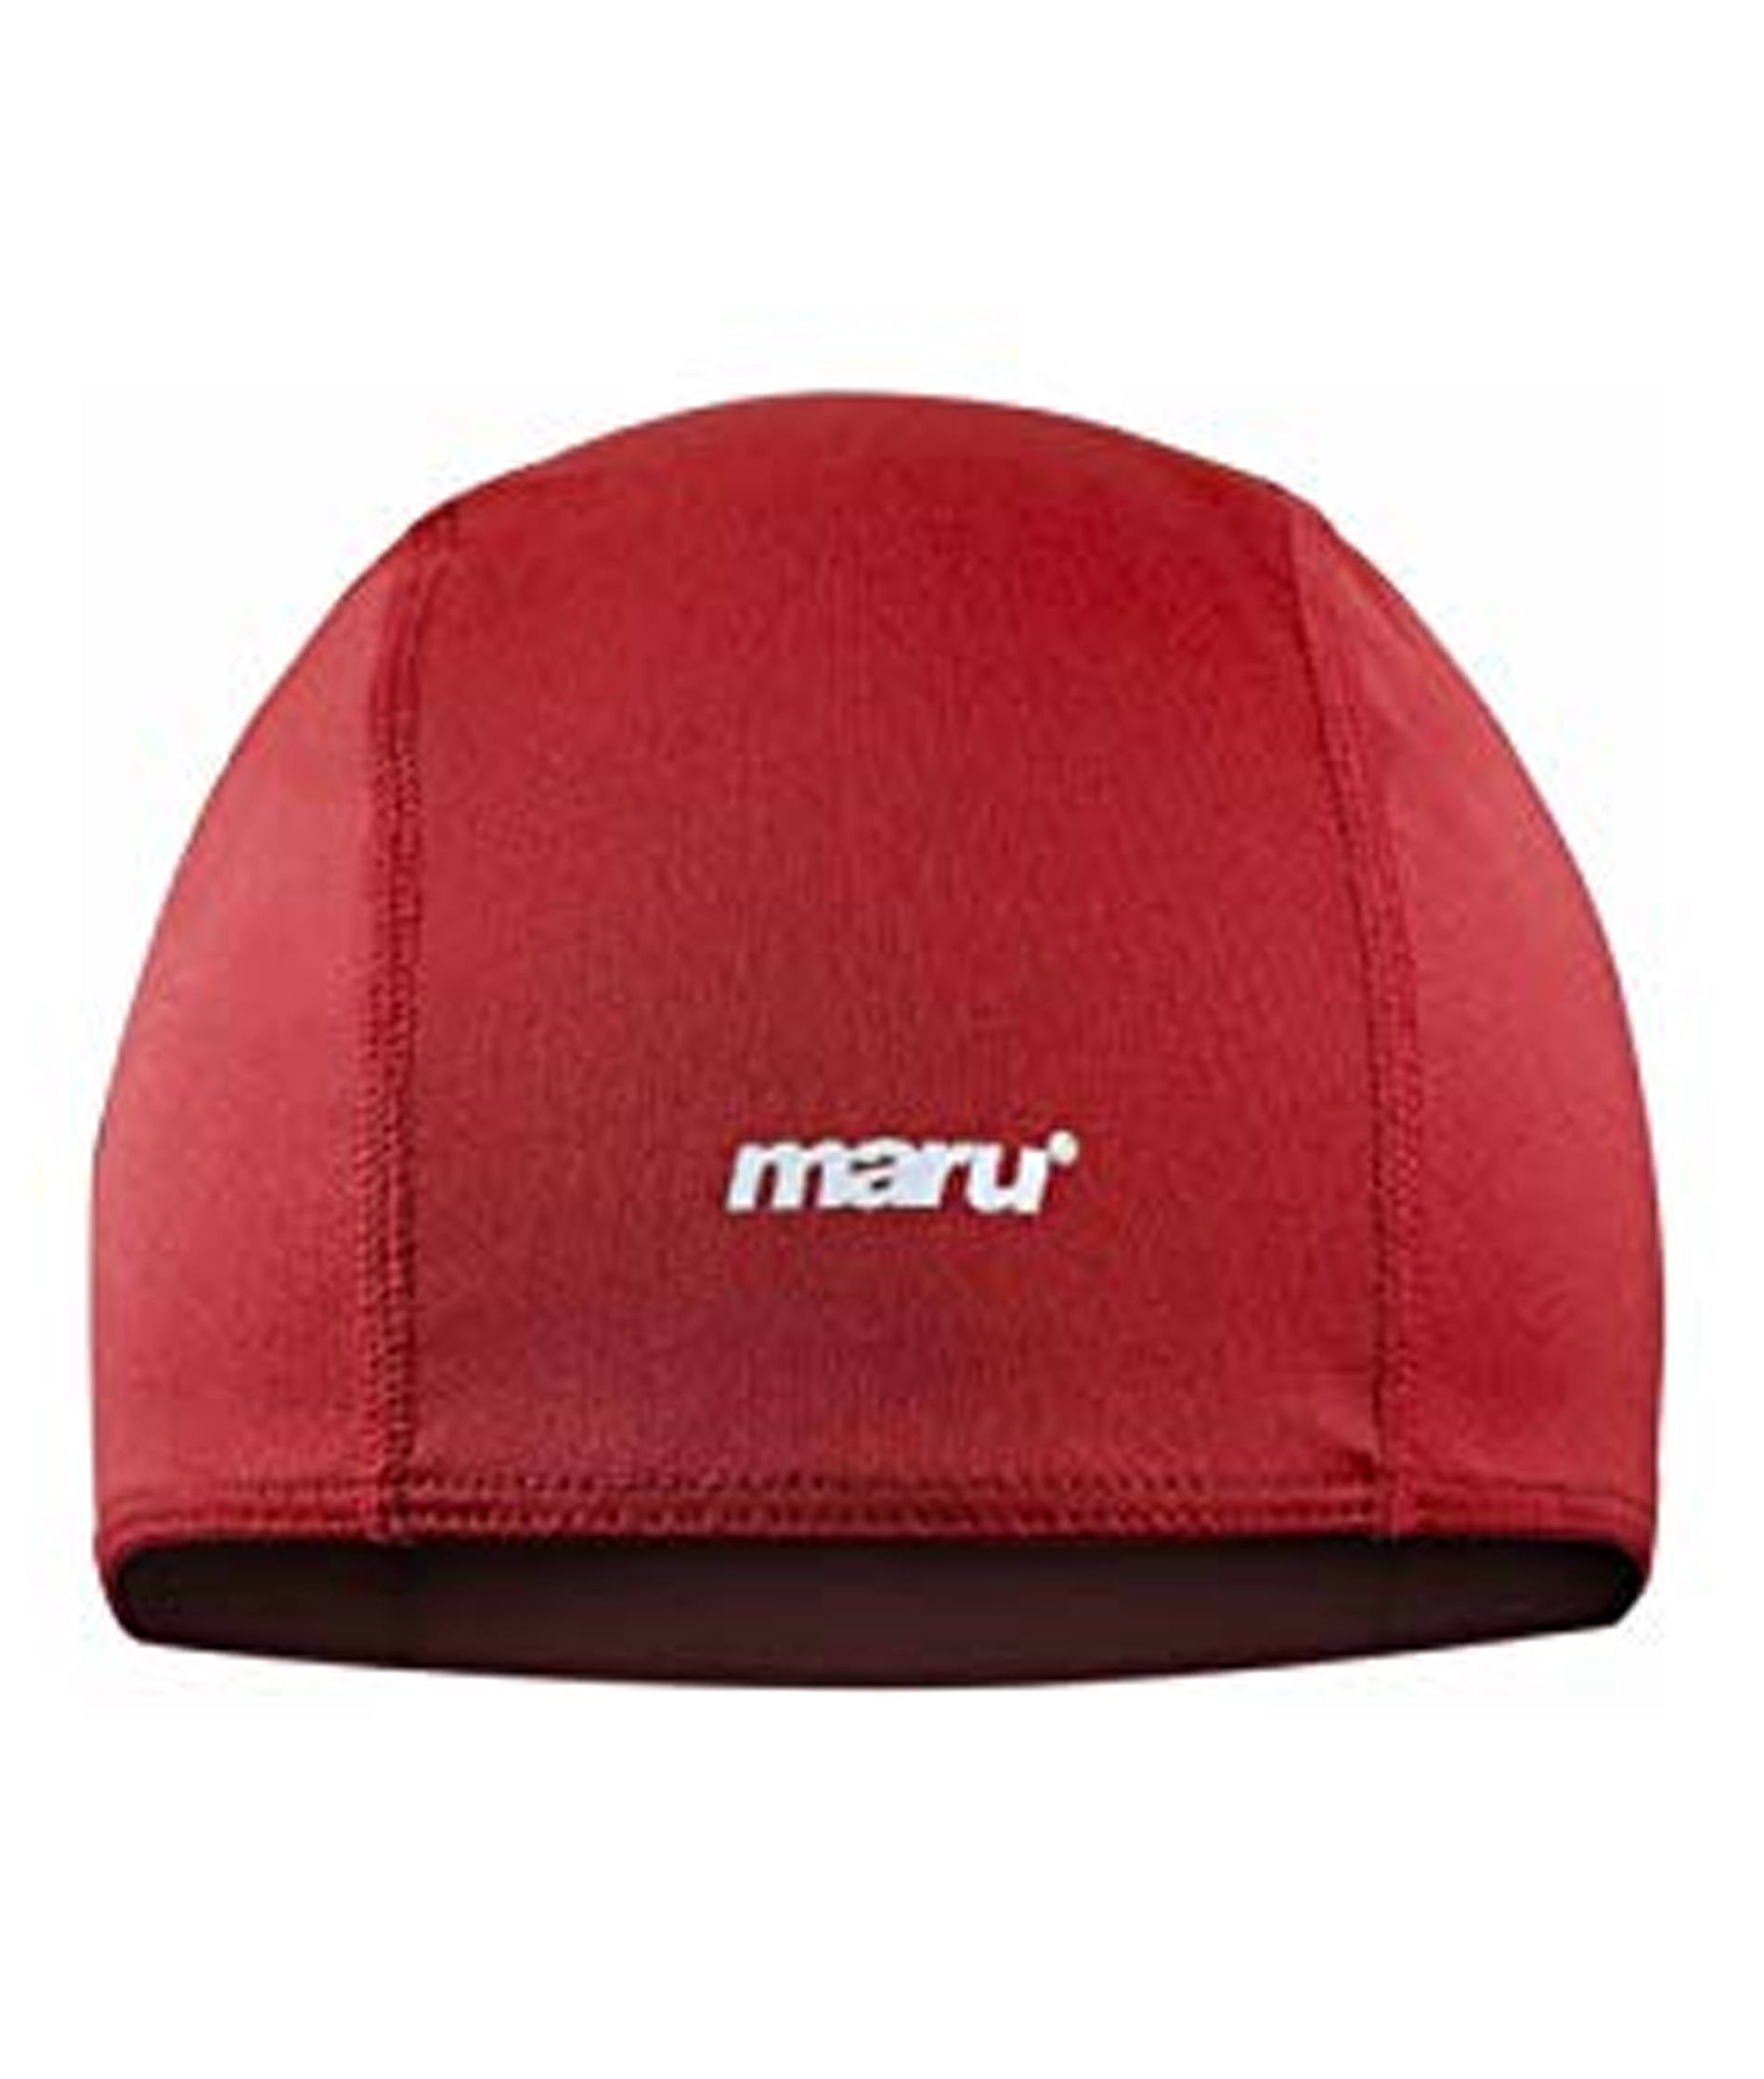 Maru Junior Polyester Cap - Red